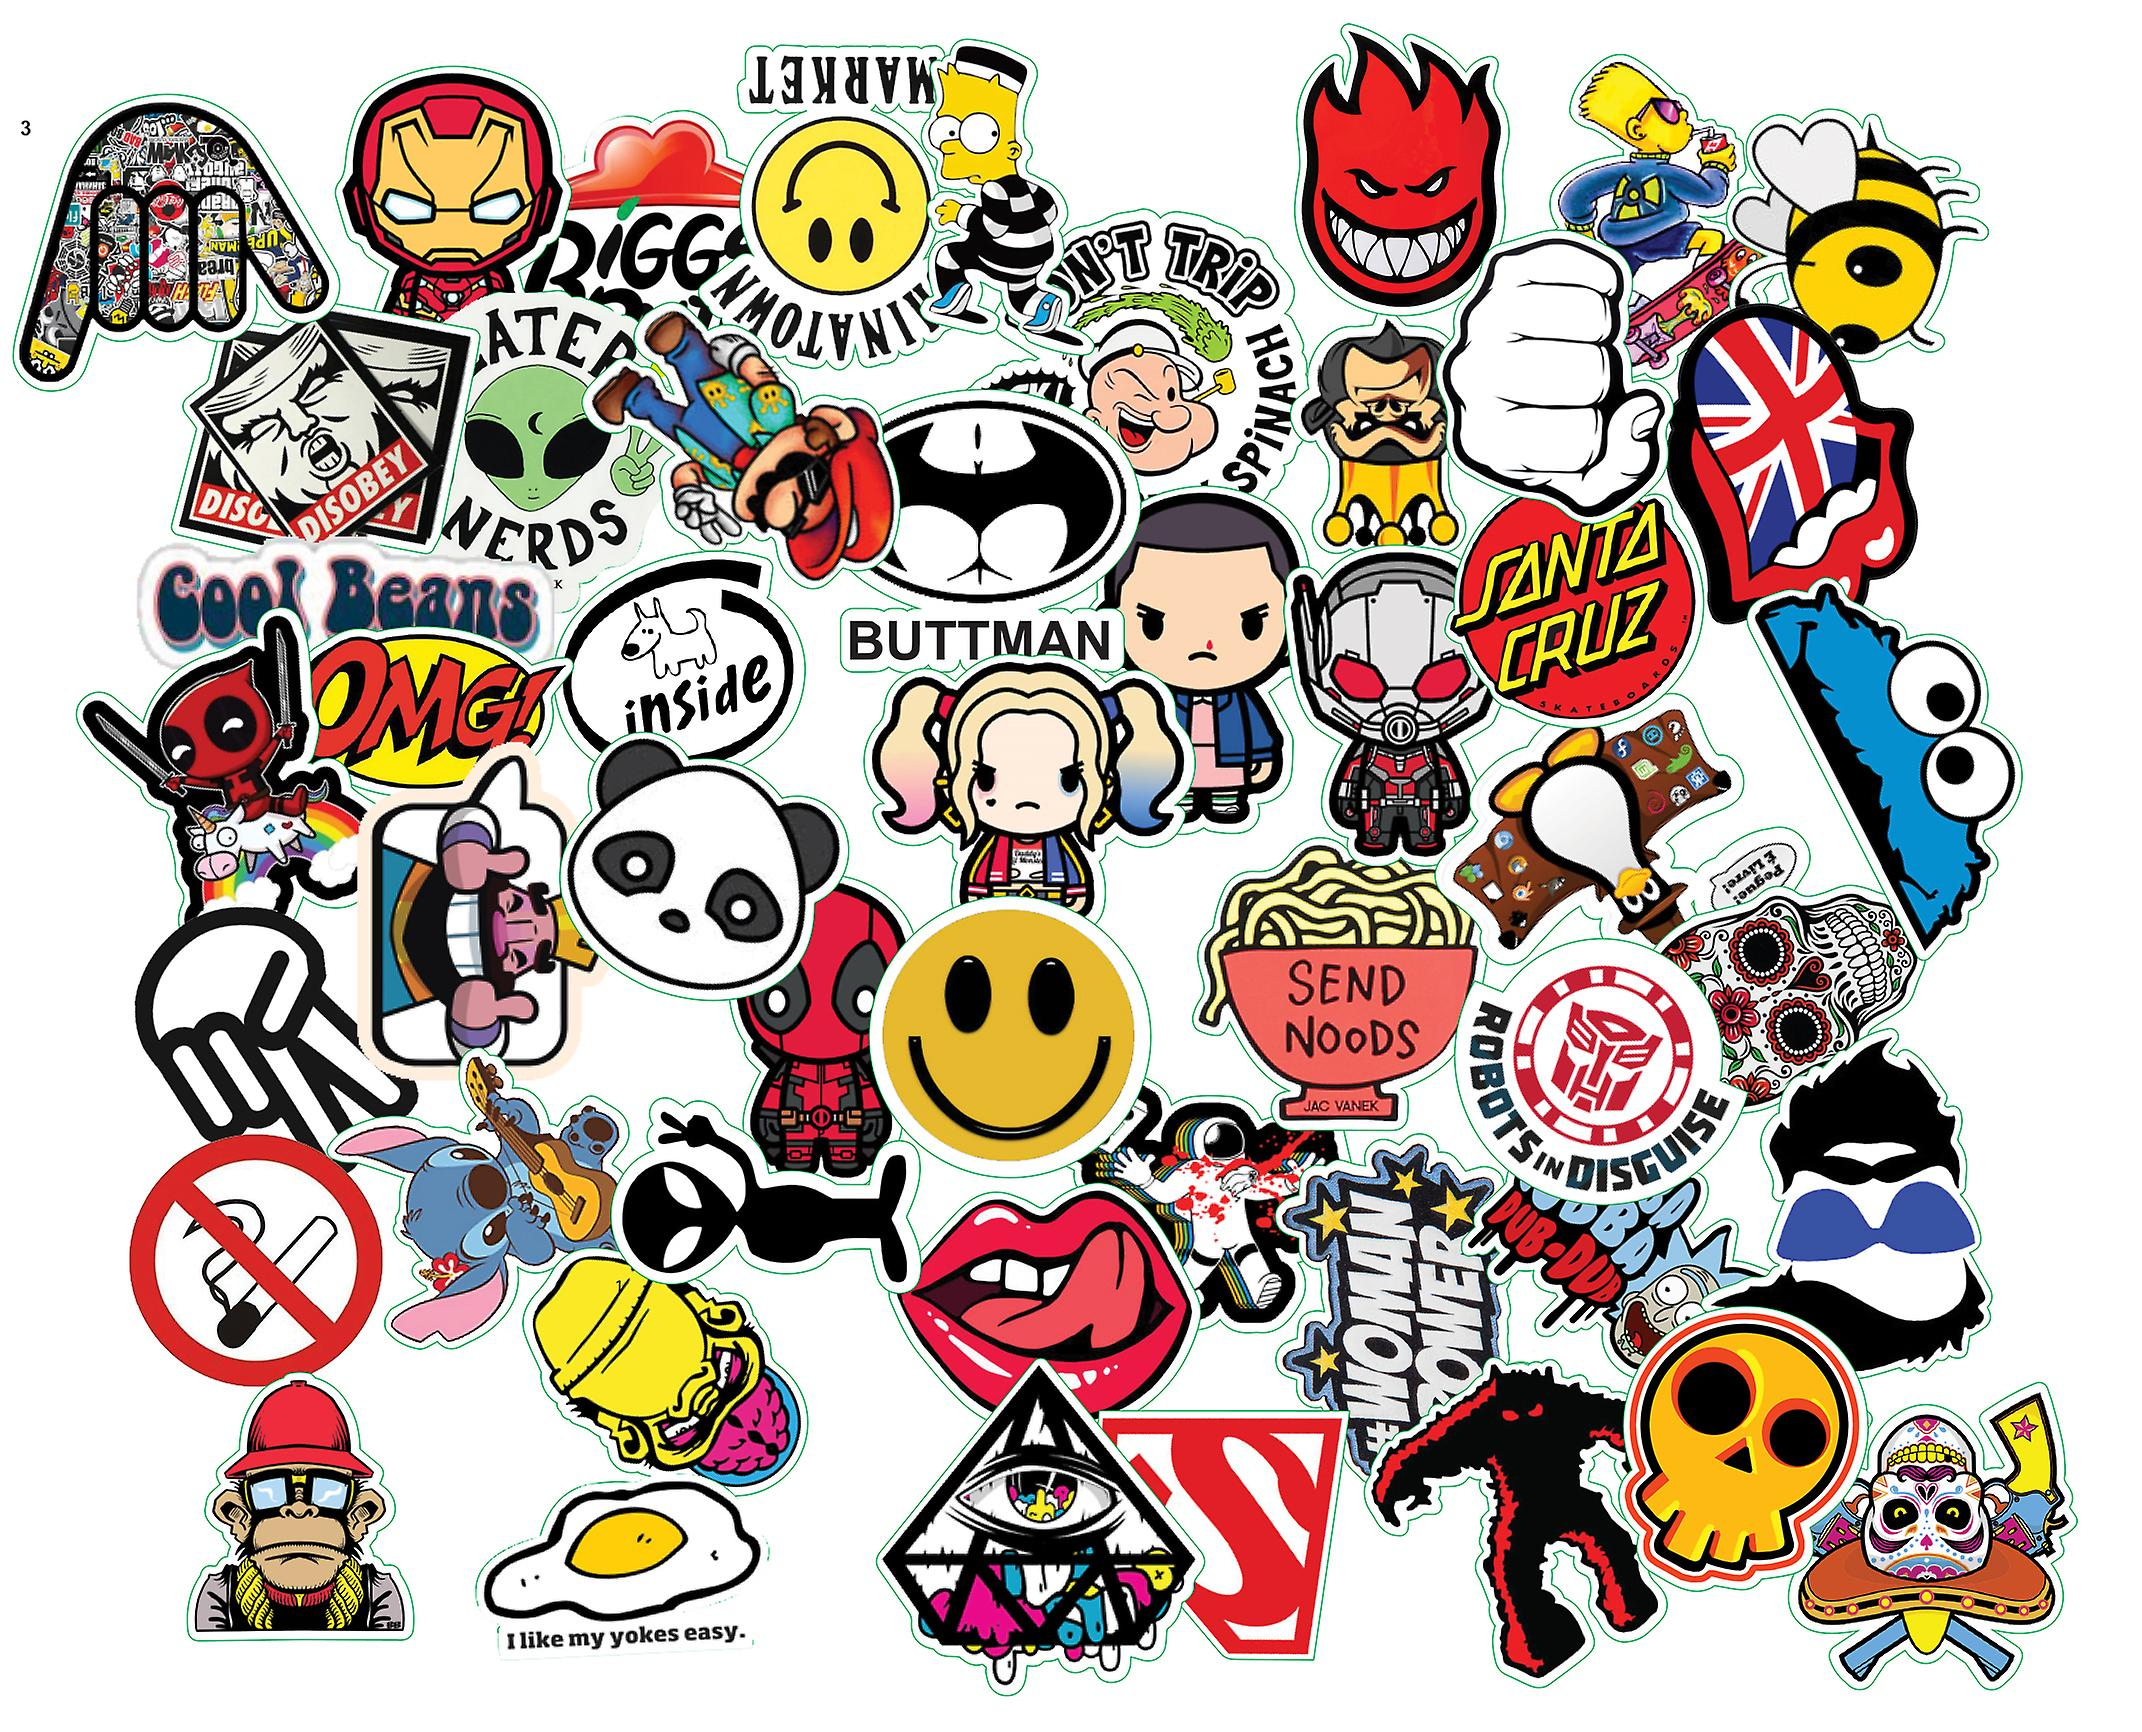 f38d115d00e4a Sticker Bomb Pack Variety Vinyl Car Sticker Motorcycle Bicycle Luggage Decal  Graffiti Patches Skateboard Stickers for